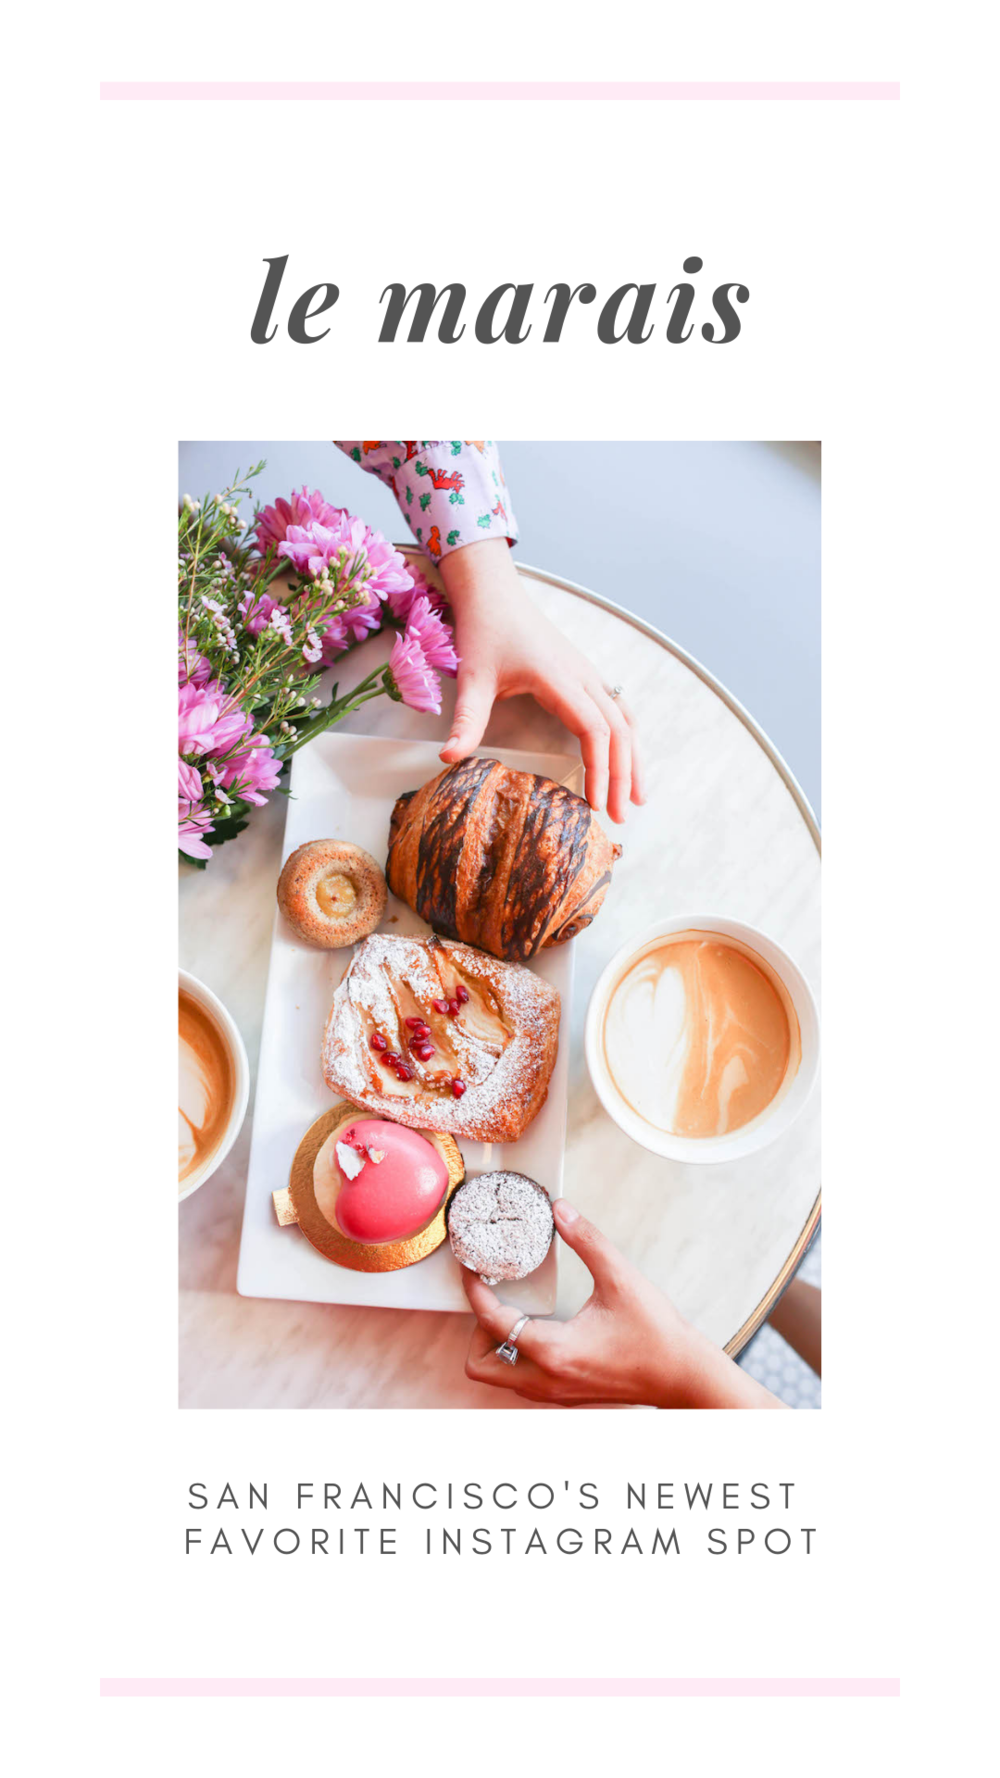 San Francisco's Newest Favorite Instagram Cafe